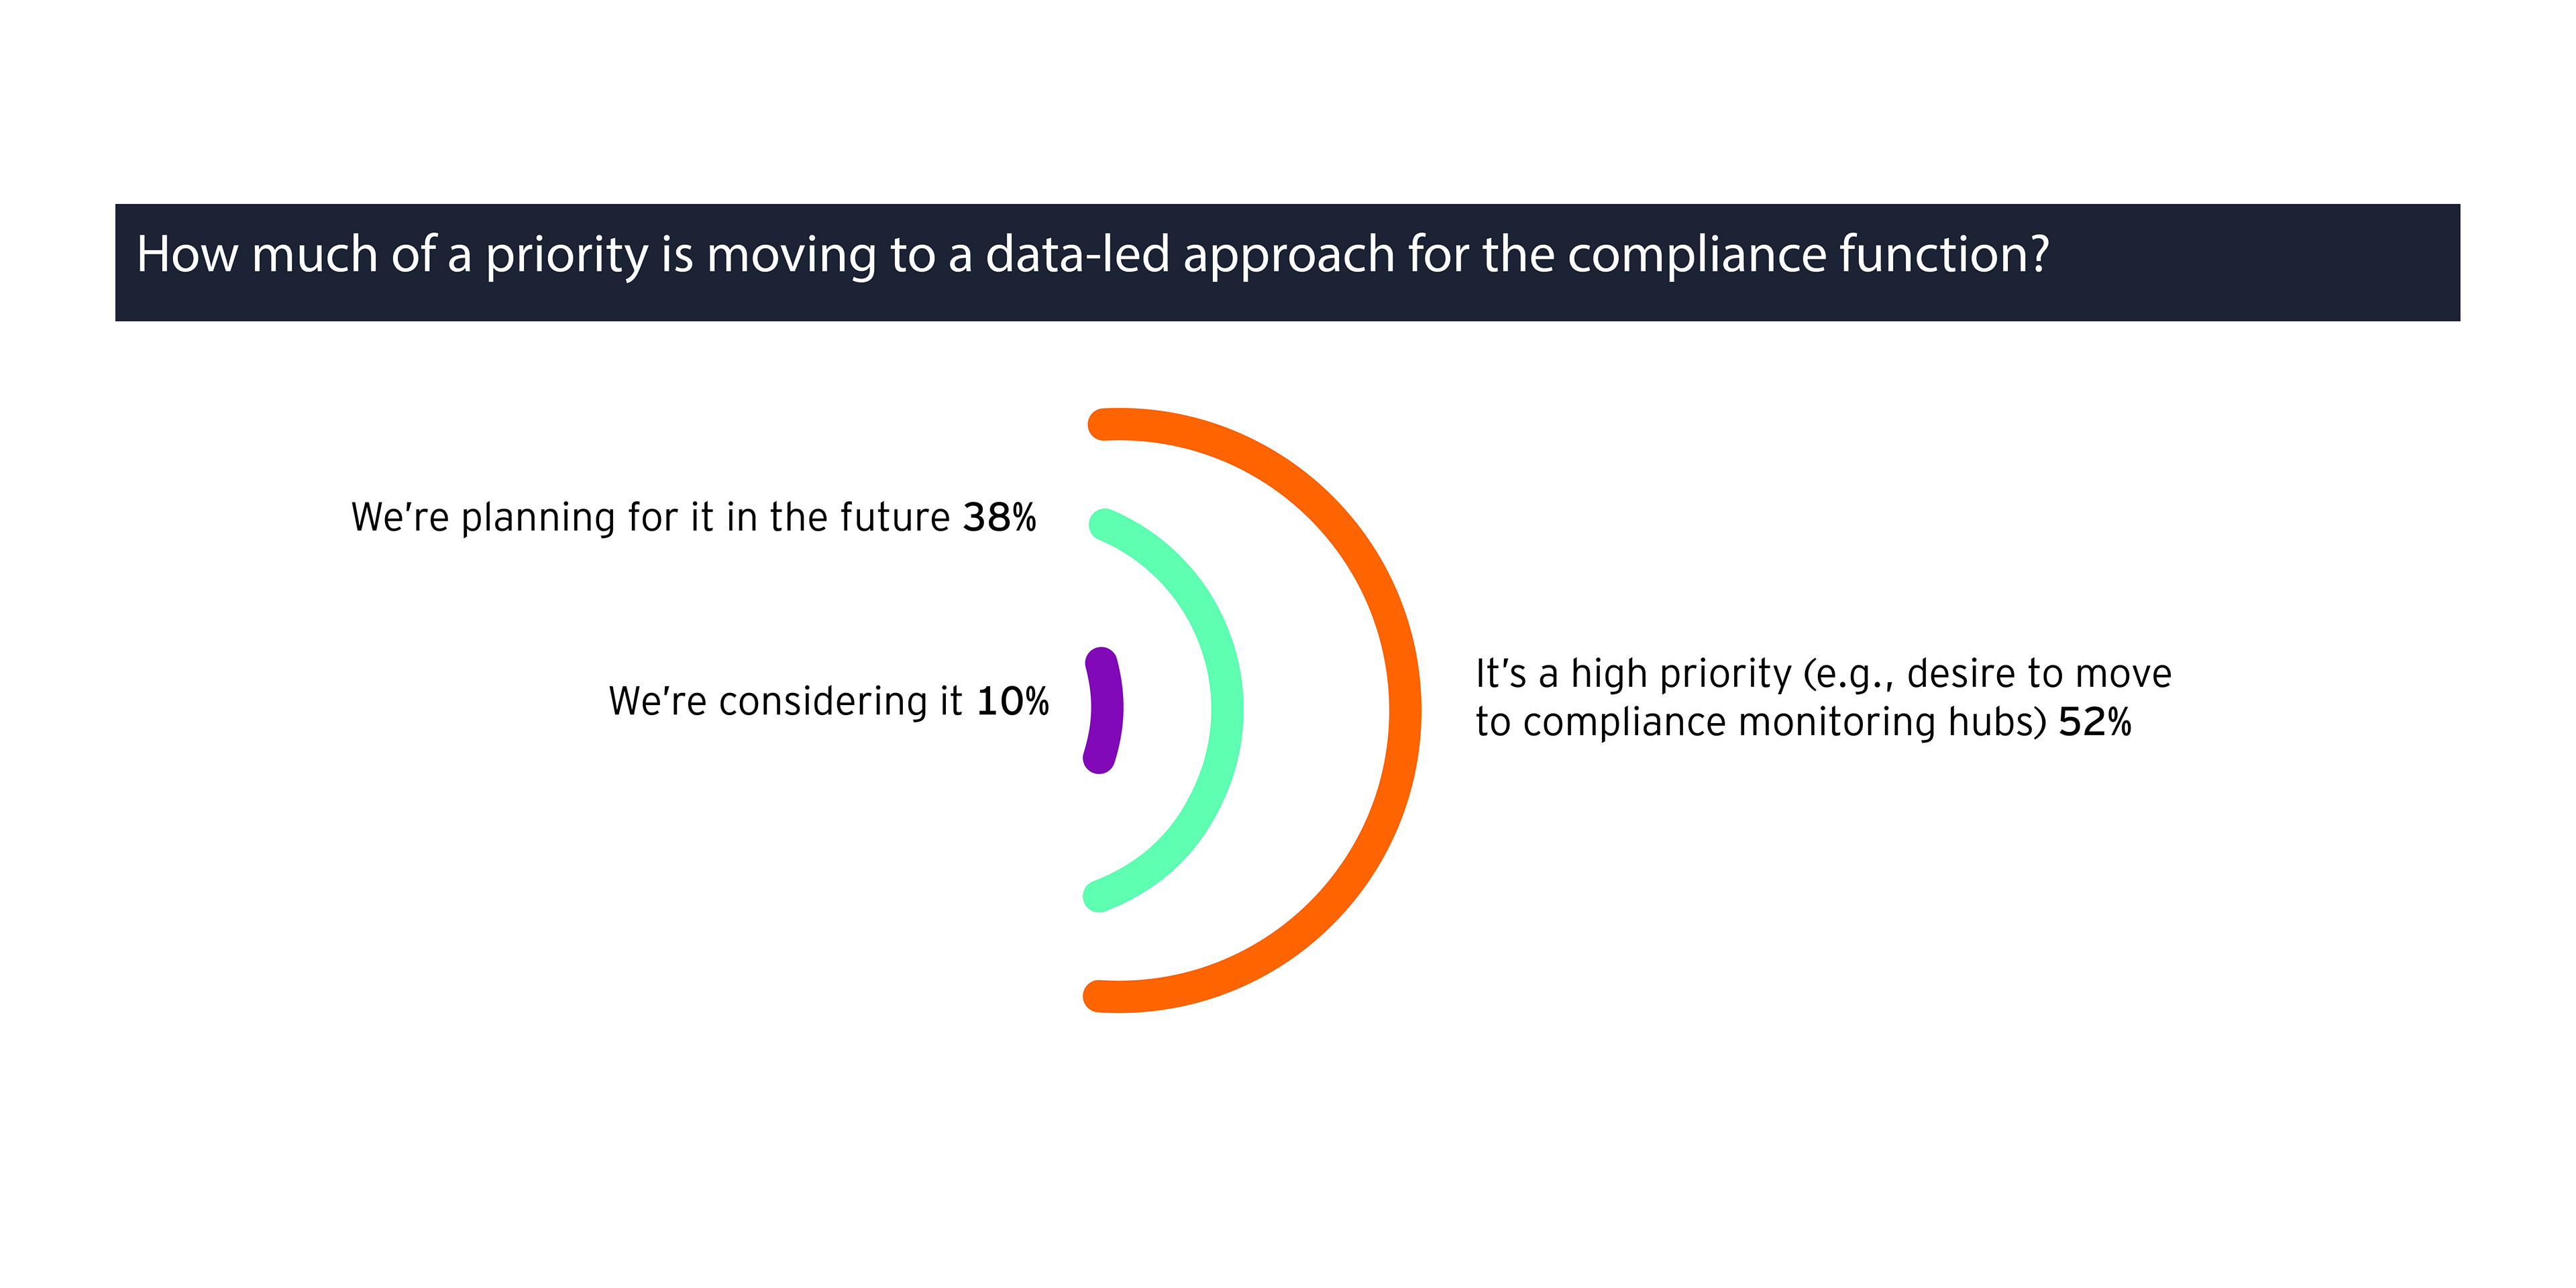 How much of a priority is moving to a data-led approach for the compliance function?